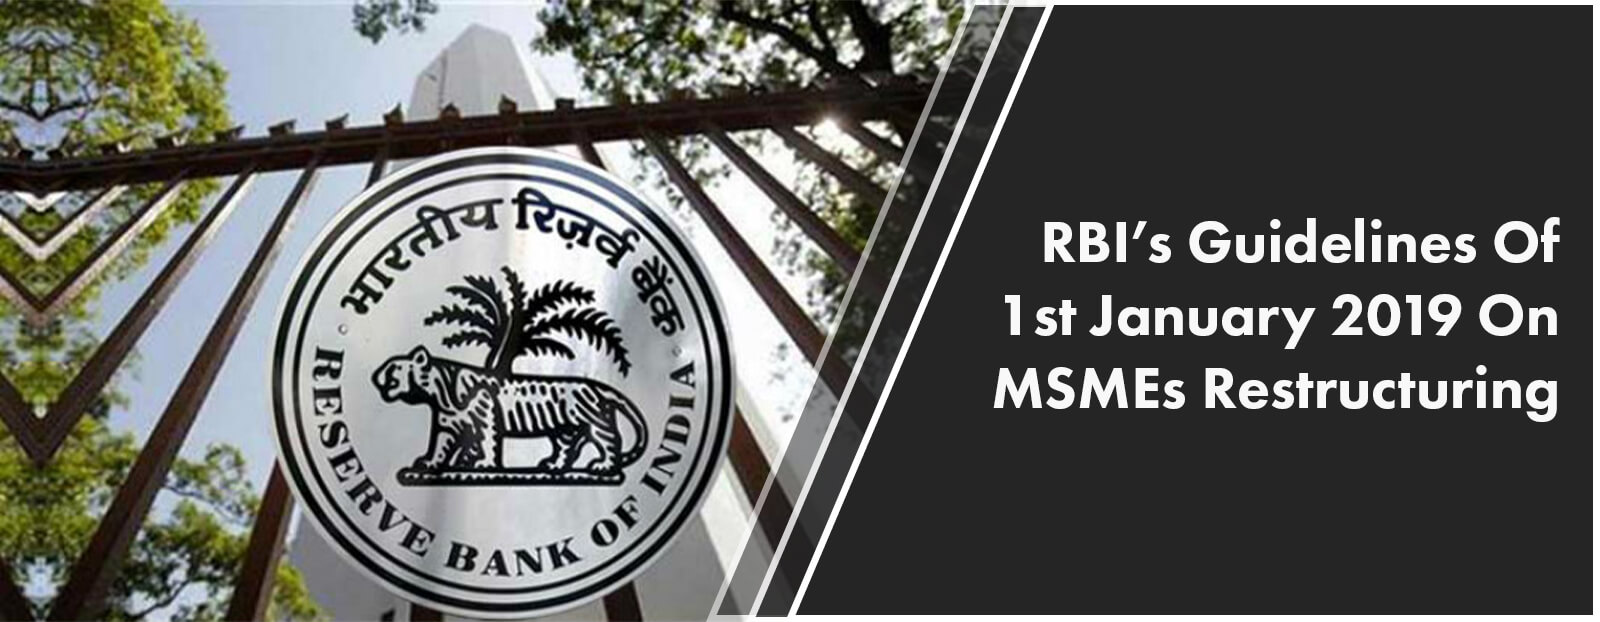 RBI's Guidelines Of 1st January 2019 On MSMEs Restructuring